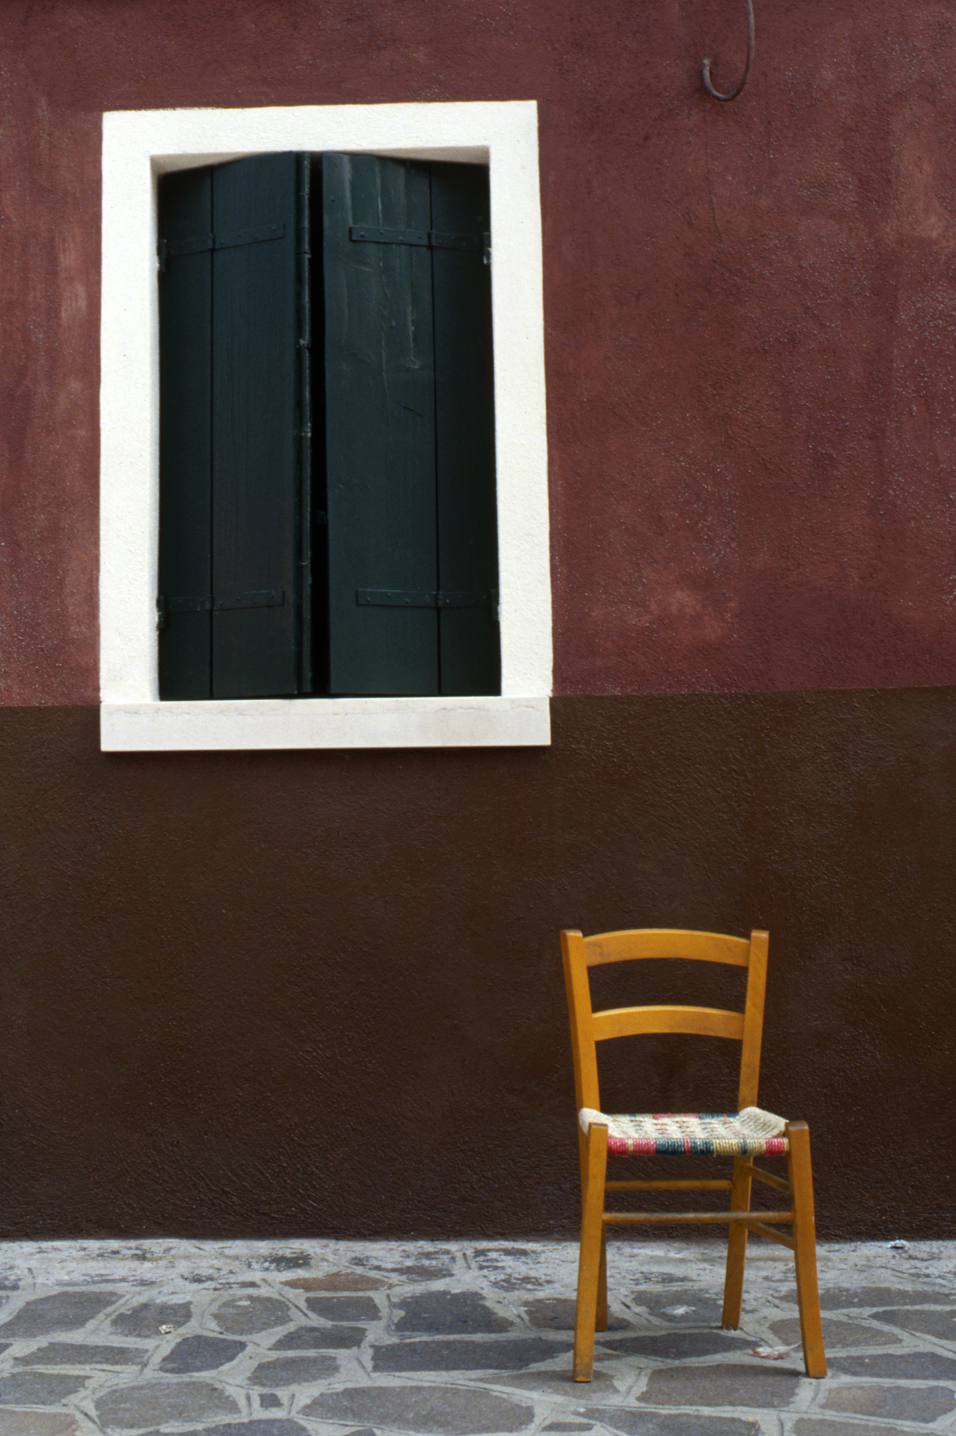 Yellow Chair, Burano Italy, 1978 ,Cibachrome Print, 24 x 16cm, Edition of 10.              Exhibition:  Burano Colour Works ,Australian Centre for Photography, Sydney; Solander Gallery, Canberra; Wagga Wagga City Art Gallery,Wagga Wagga, 1979.